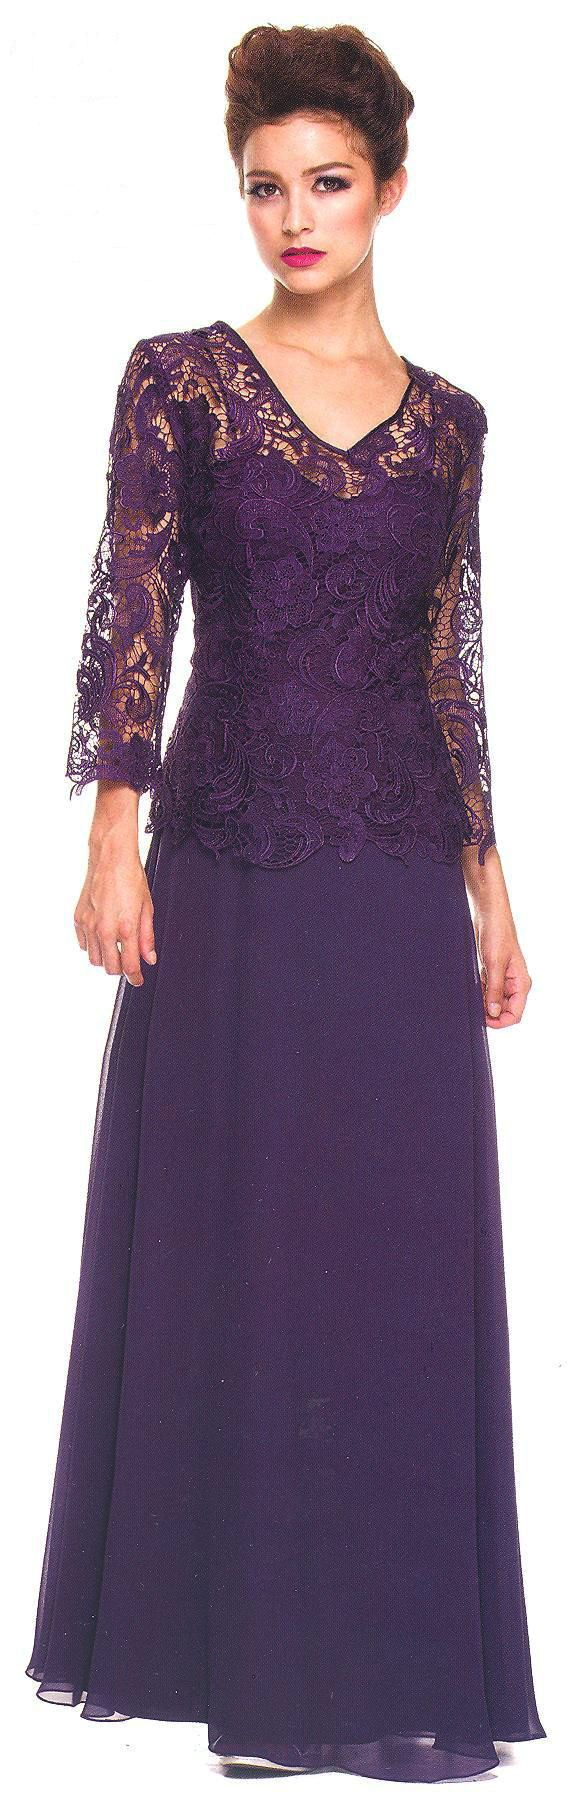 ep.yimg.com ay sophisticatedlady mob-dress-under-120-5040-always ...